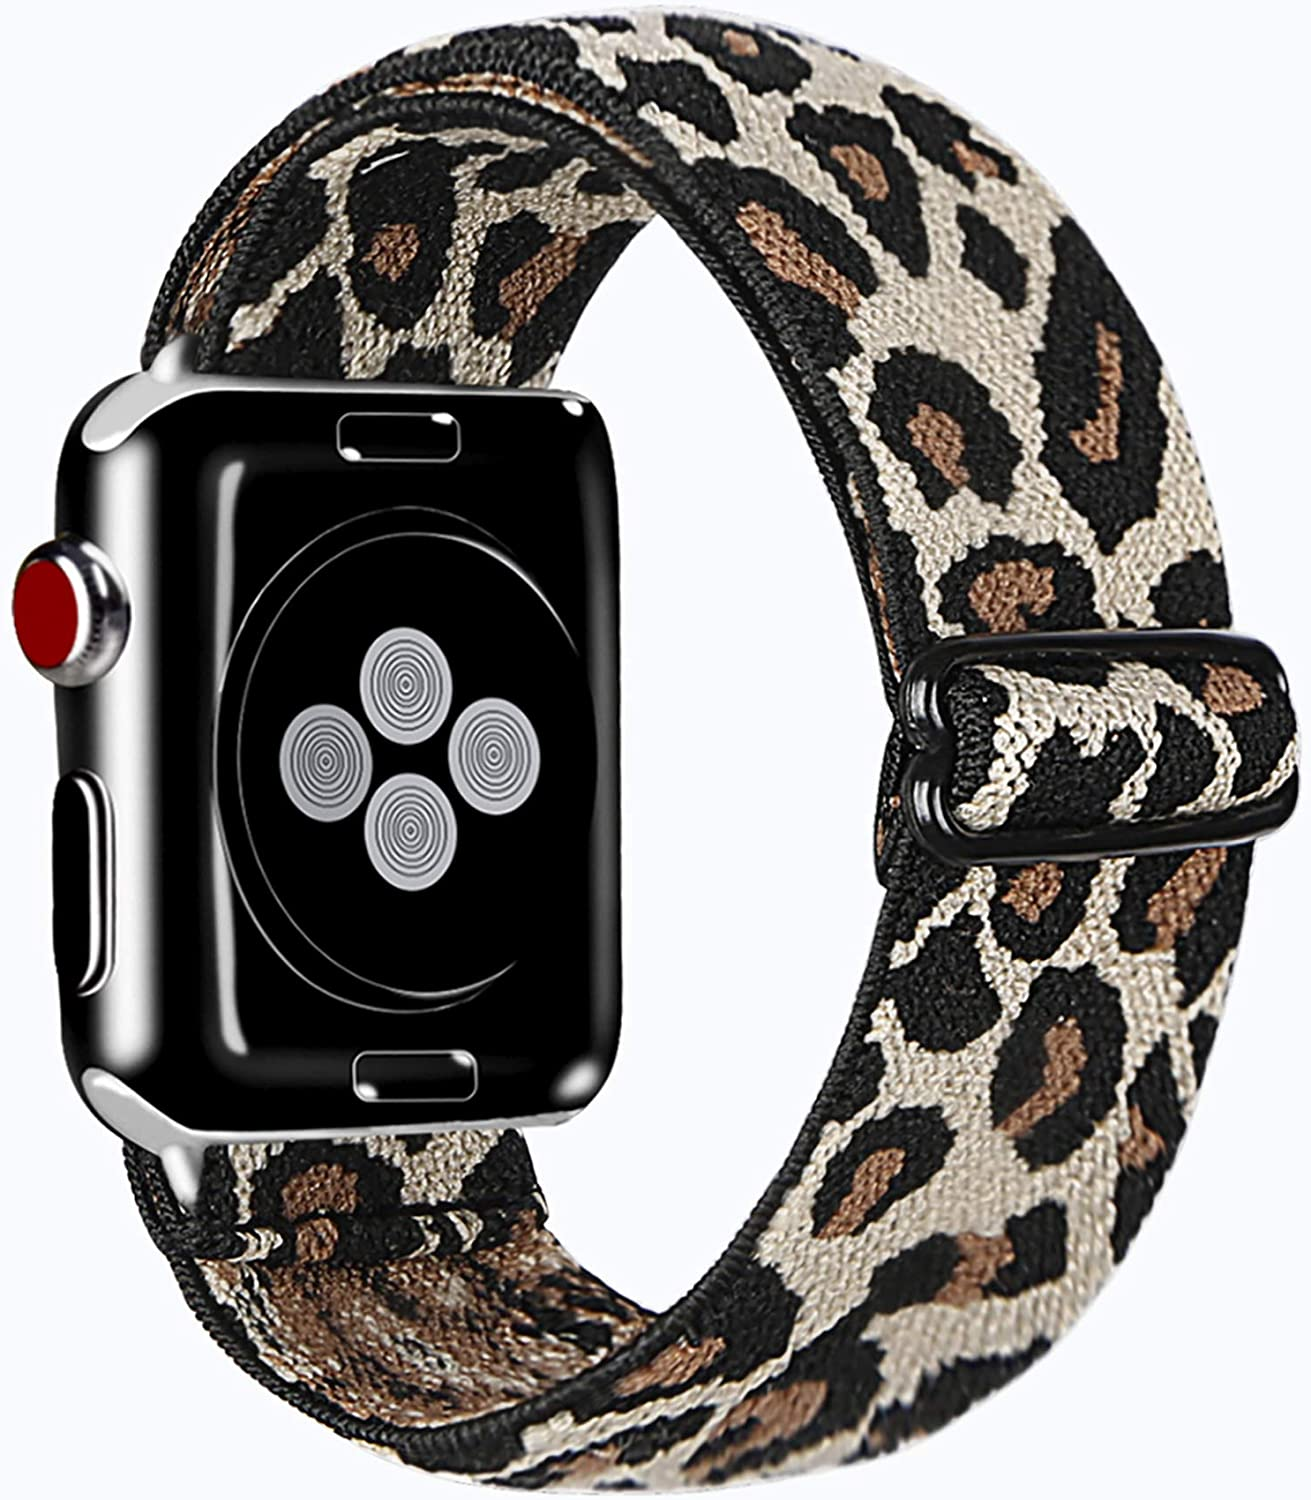 Kraftychix Adjustable Elastic Watch Band Compatible with Apple Watch 38mm 40mm,Soft Stretch Bracelet Loop Strap Replacement Wristband for Iwatch Series SE/6/5/4/3/2/1(Light leopard,38/40MM)